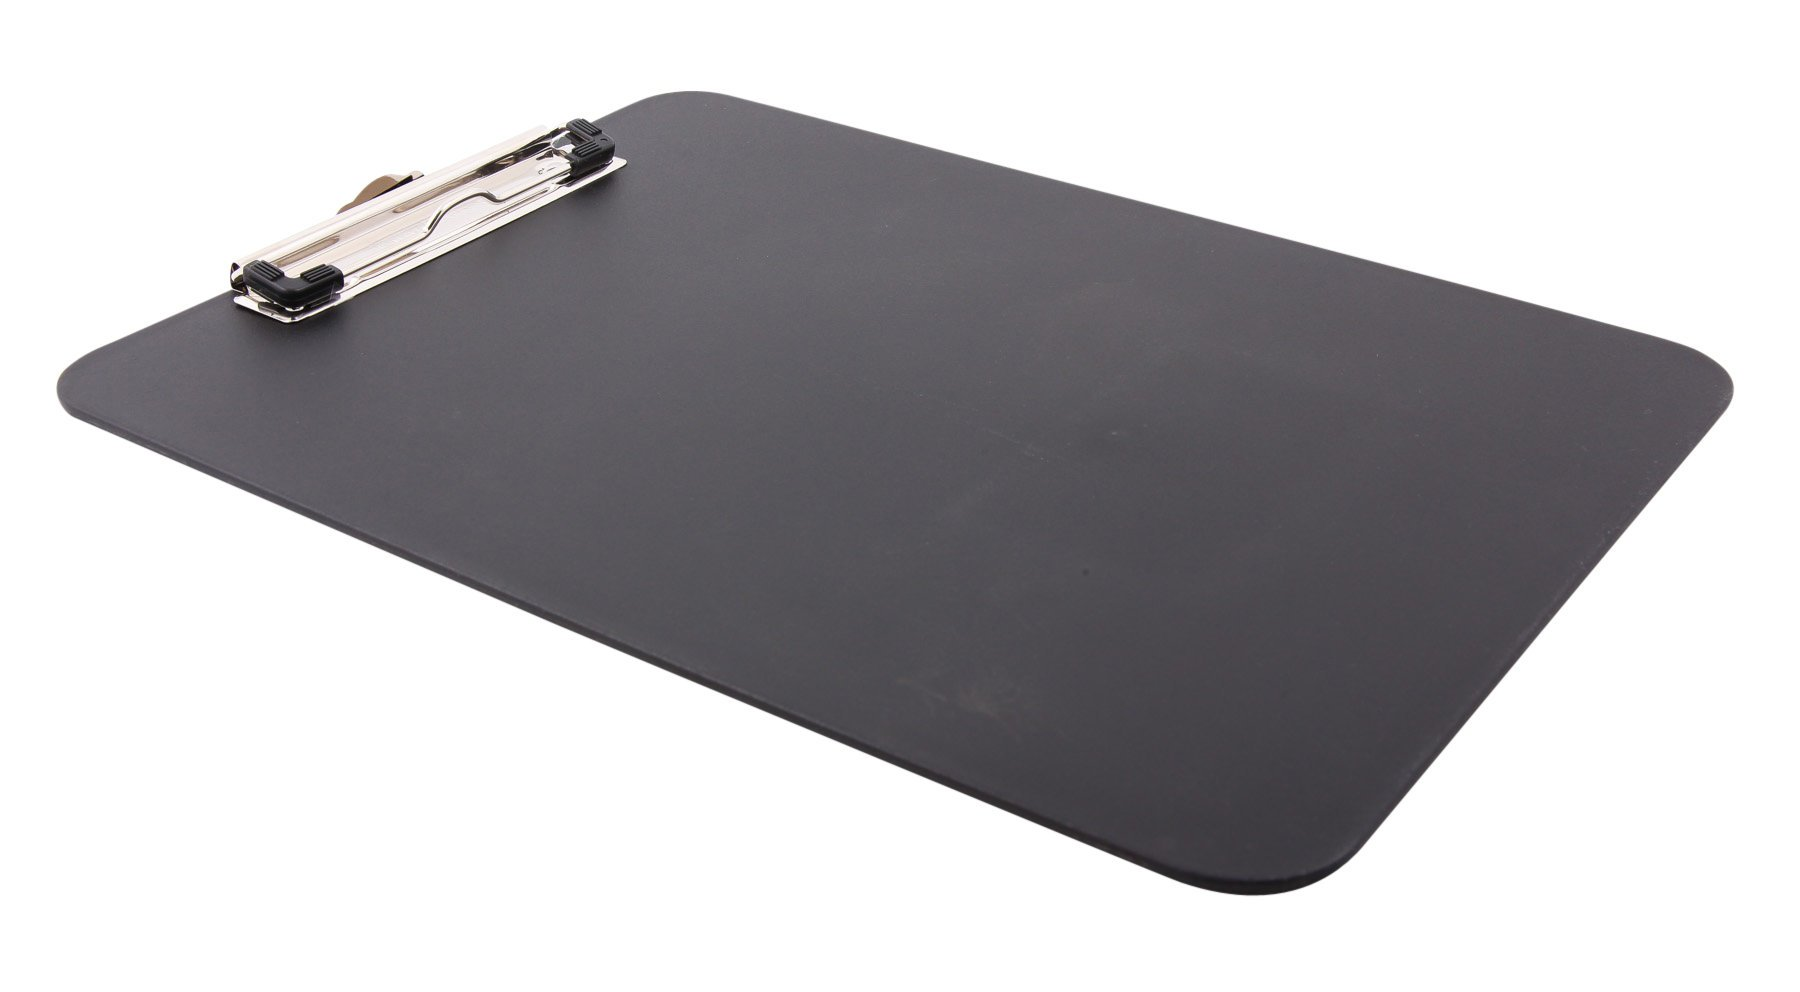 Mobile OPS Recycled Unbreakable Clipboard 1 Each Black (Pack of 72) (61624)